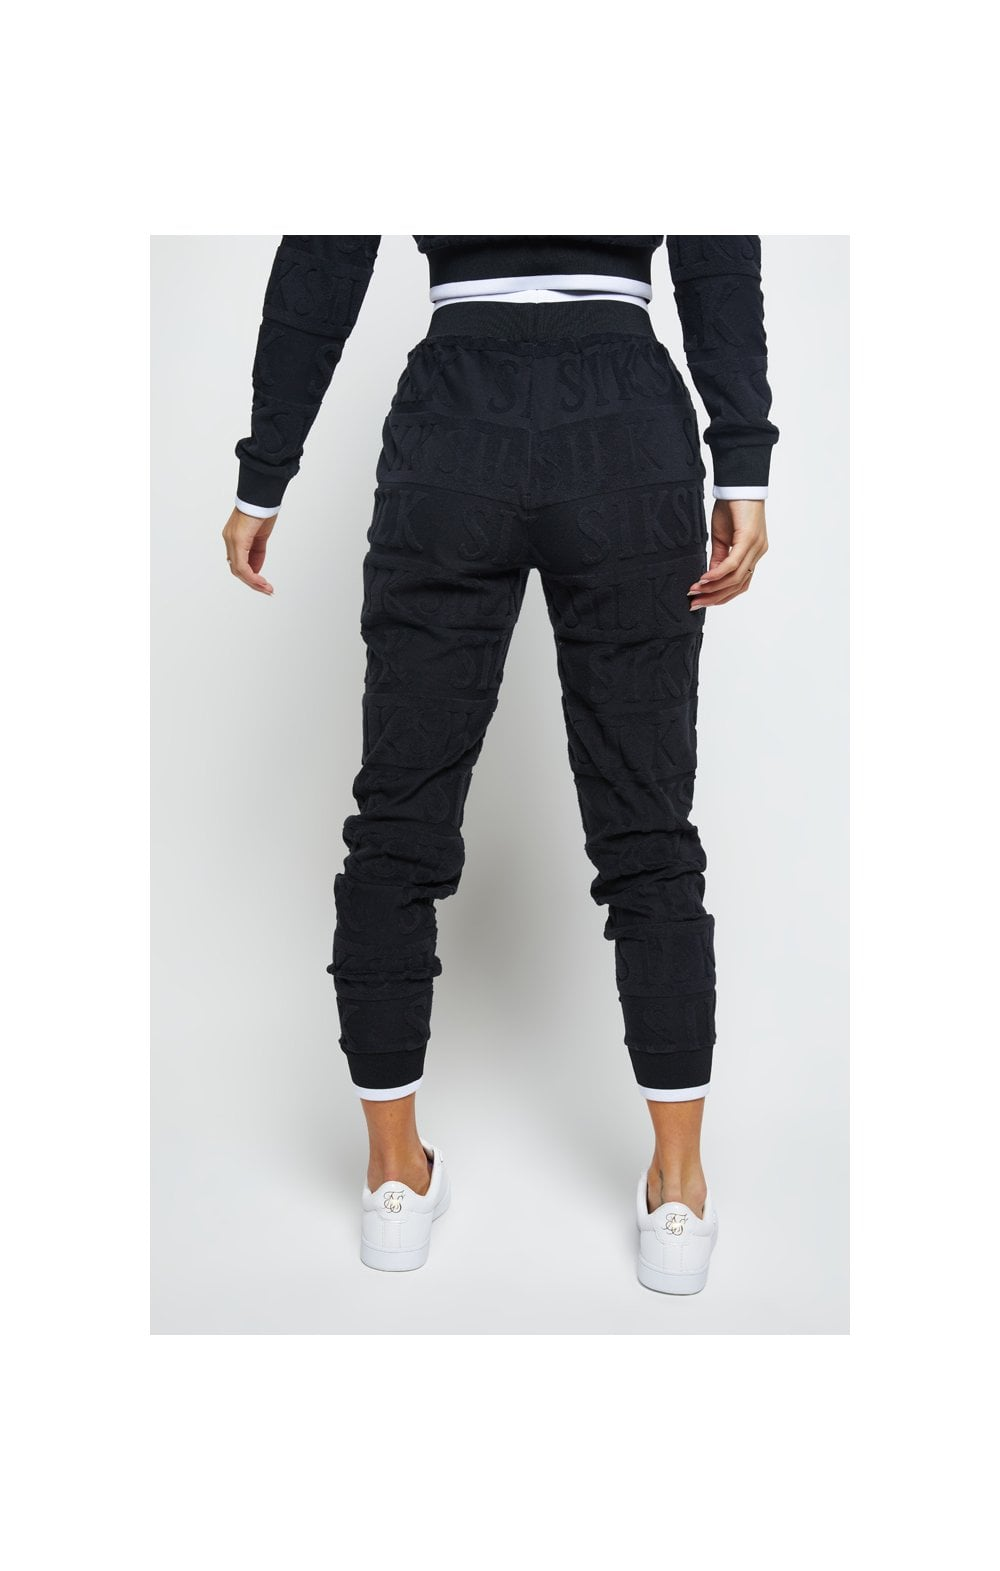 Load image into Gallery viewer, SikSilk Inverse Track Pants - Black (2)